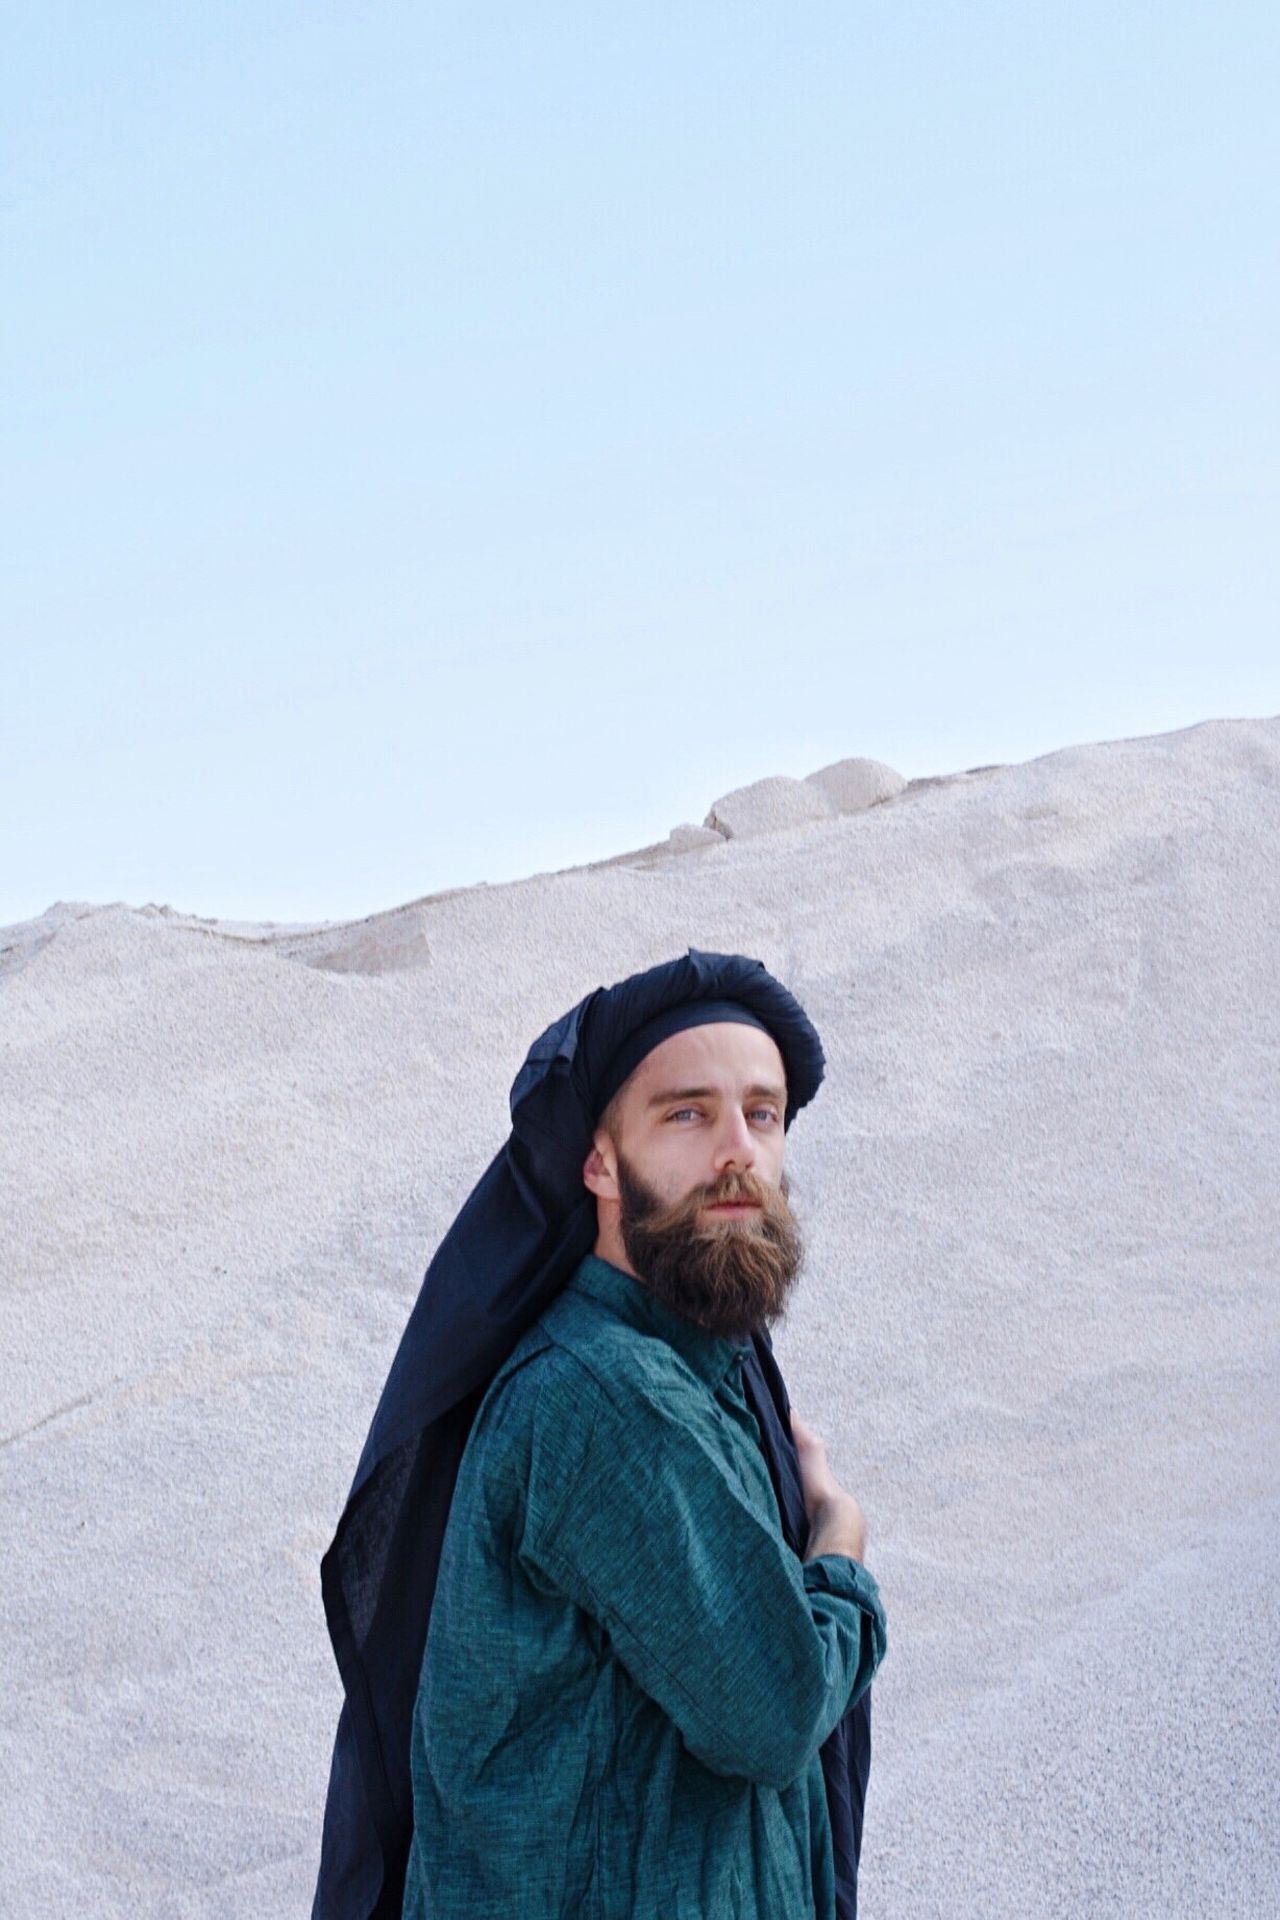 The Portraitist - 2017 EyeEm Awards Portrait Minimalism Beard Mountain Nature Day Standing Outdoors Clear Sky One Person Sky Dune Greece Crete Portraits Portrait Photography Portrait Of A Friend Portraiture PortraitPhotography Portrait Of A Man  Makeportraits Makeportraitsnotwar Makeportrait Bearded